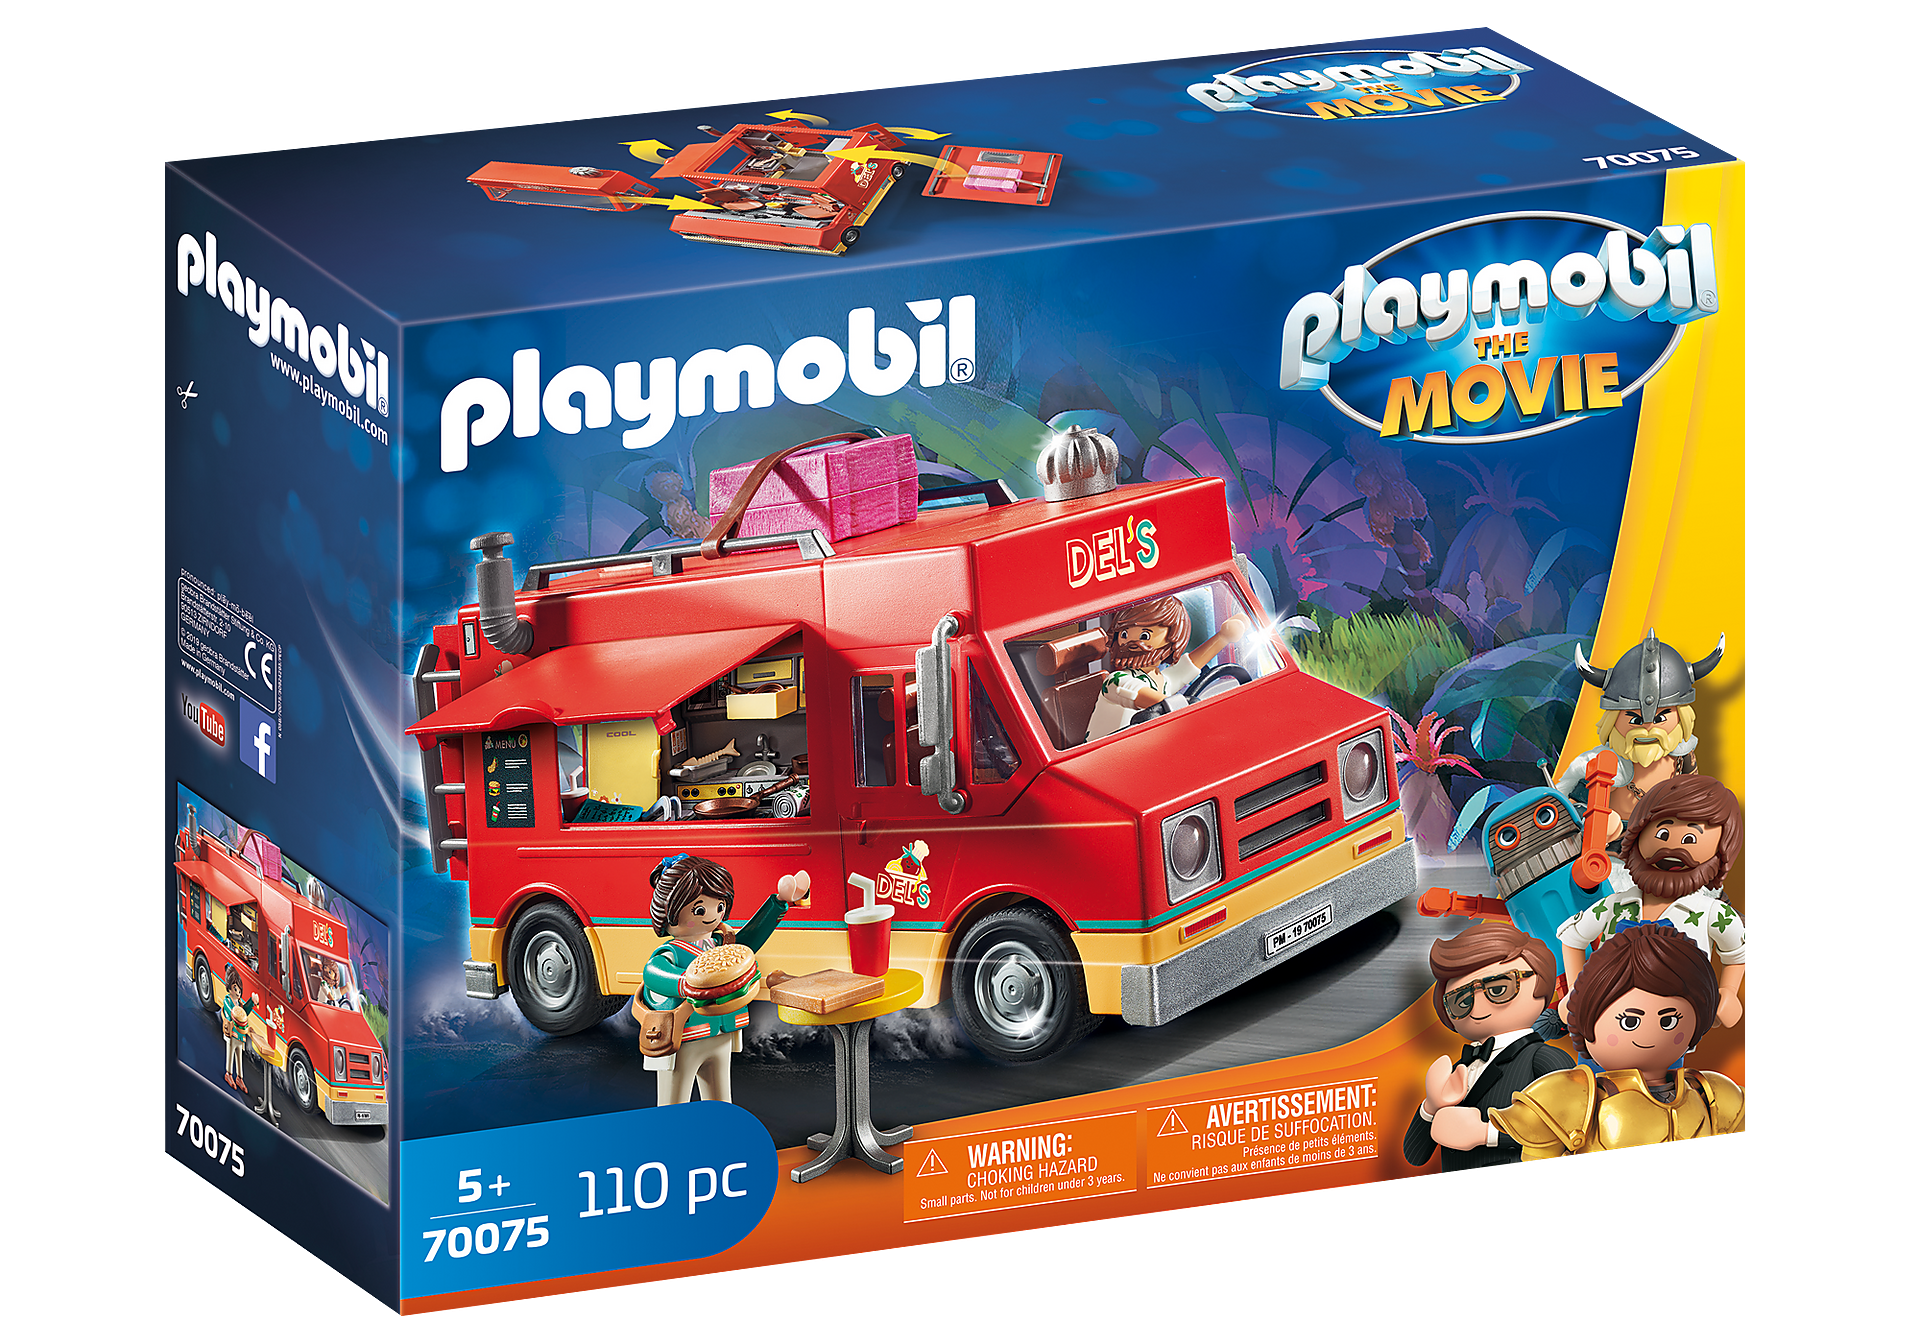 http://media.playmobil.com/i/playmobil/70075_product_box_front/PLAYMOBIL: THE MOVIE Food Truck di Del